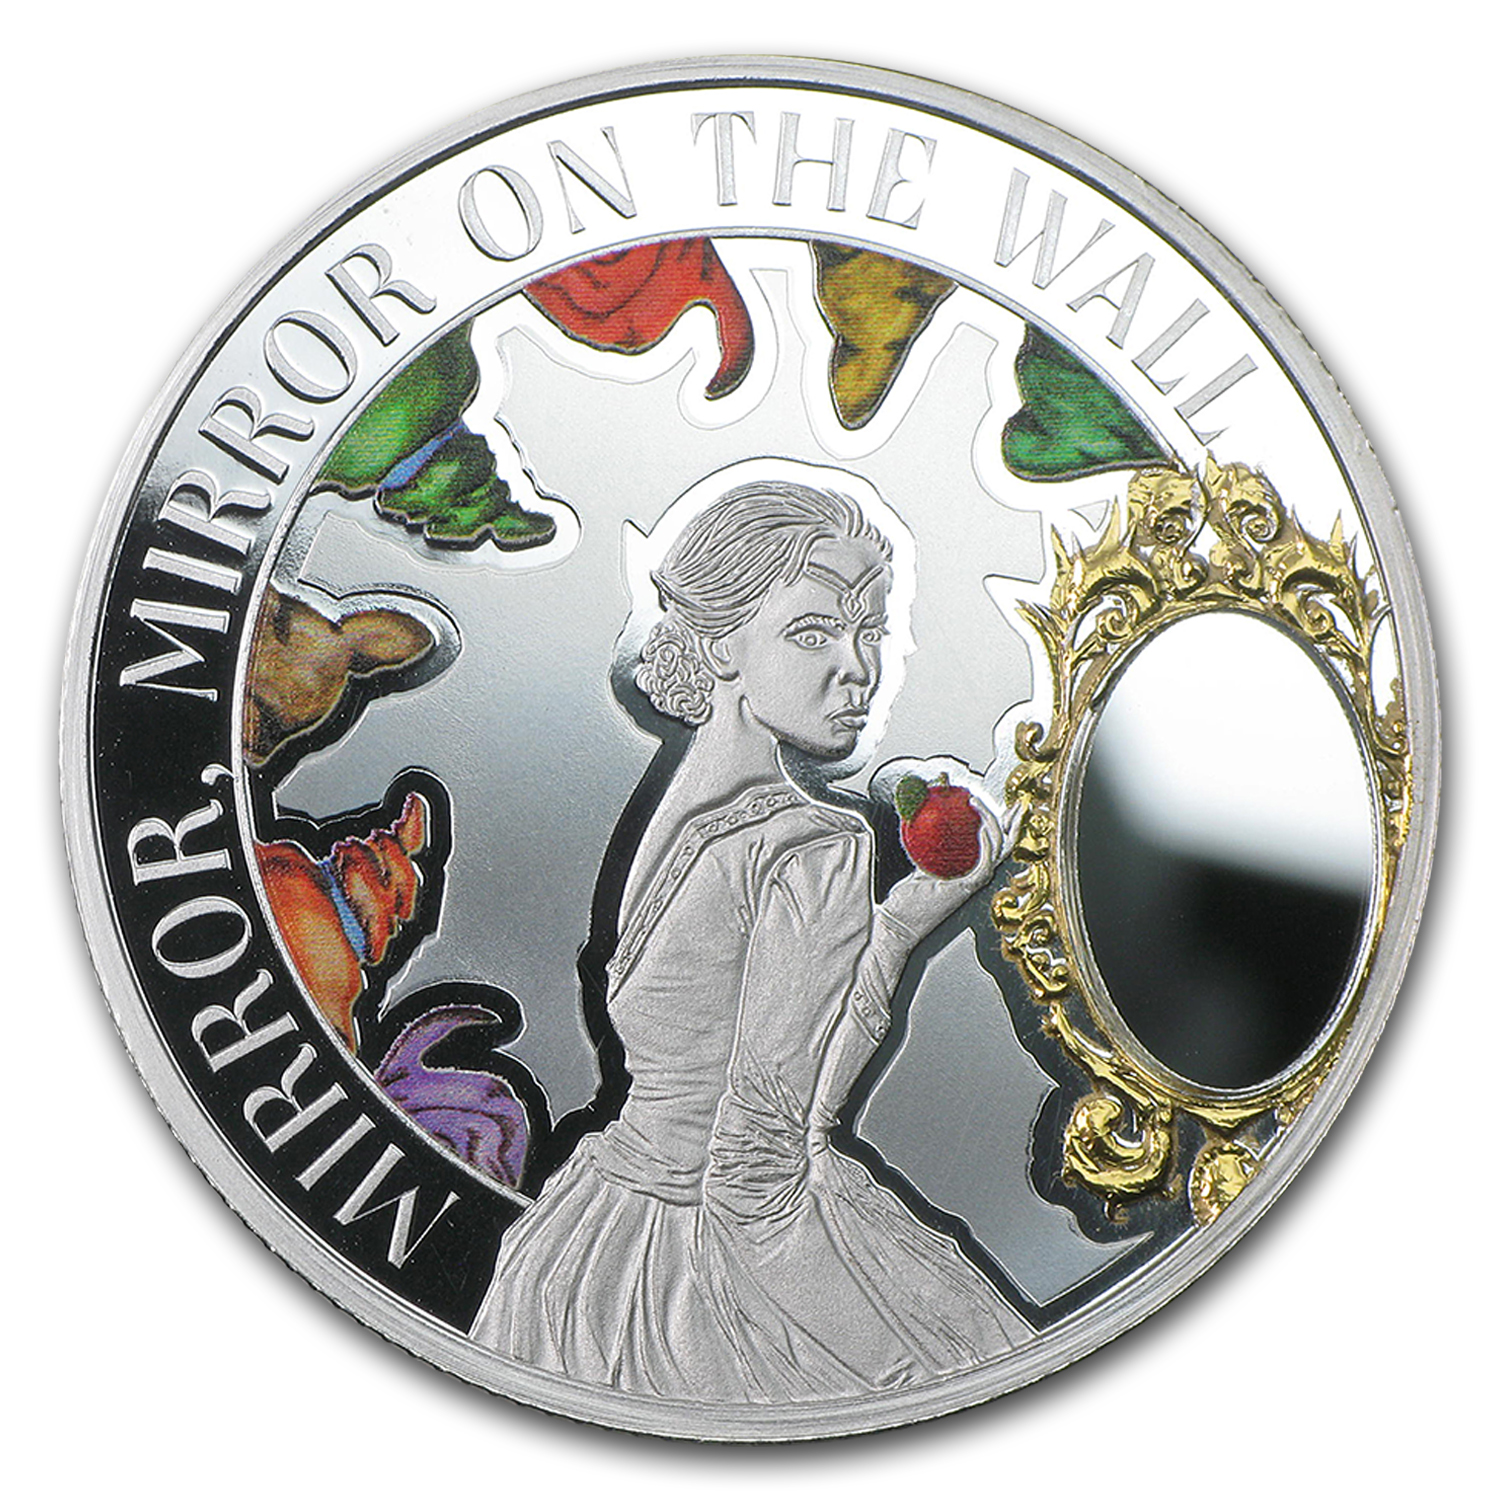 2015 Niue 1 oz Silver $1 Mirror Mirror on the Wall